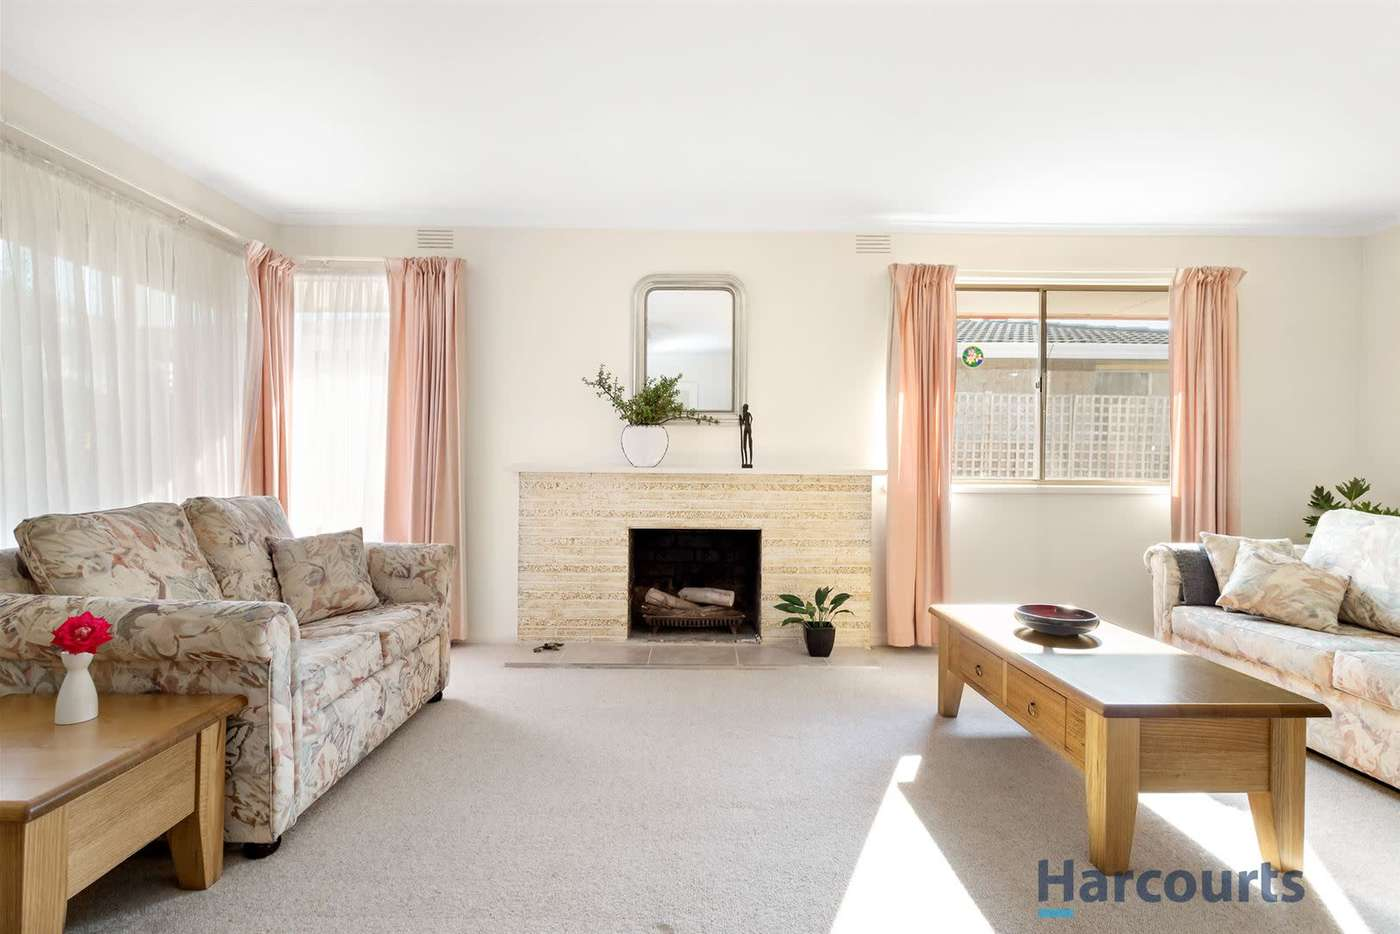 Fifth view of Homely house listing, 101 Albany Drive, Mulgrave VIC 3170